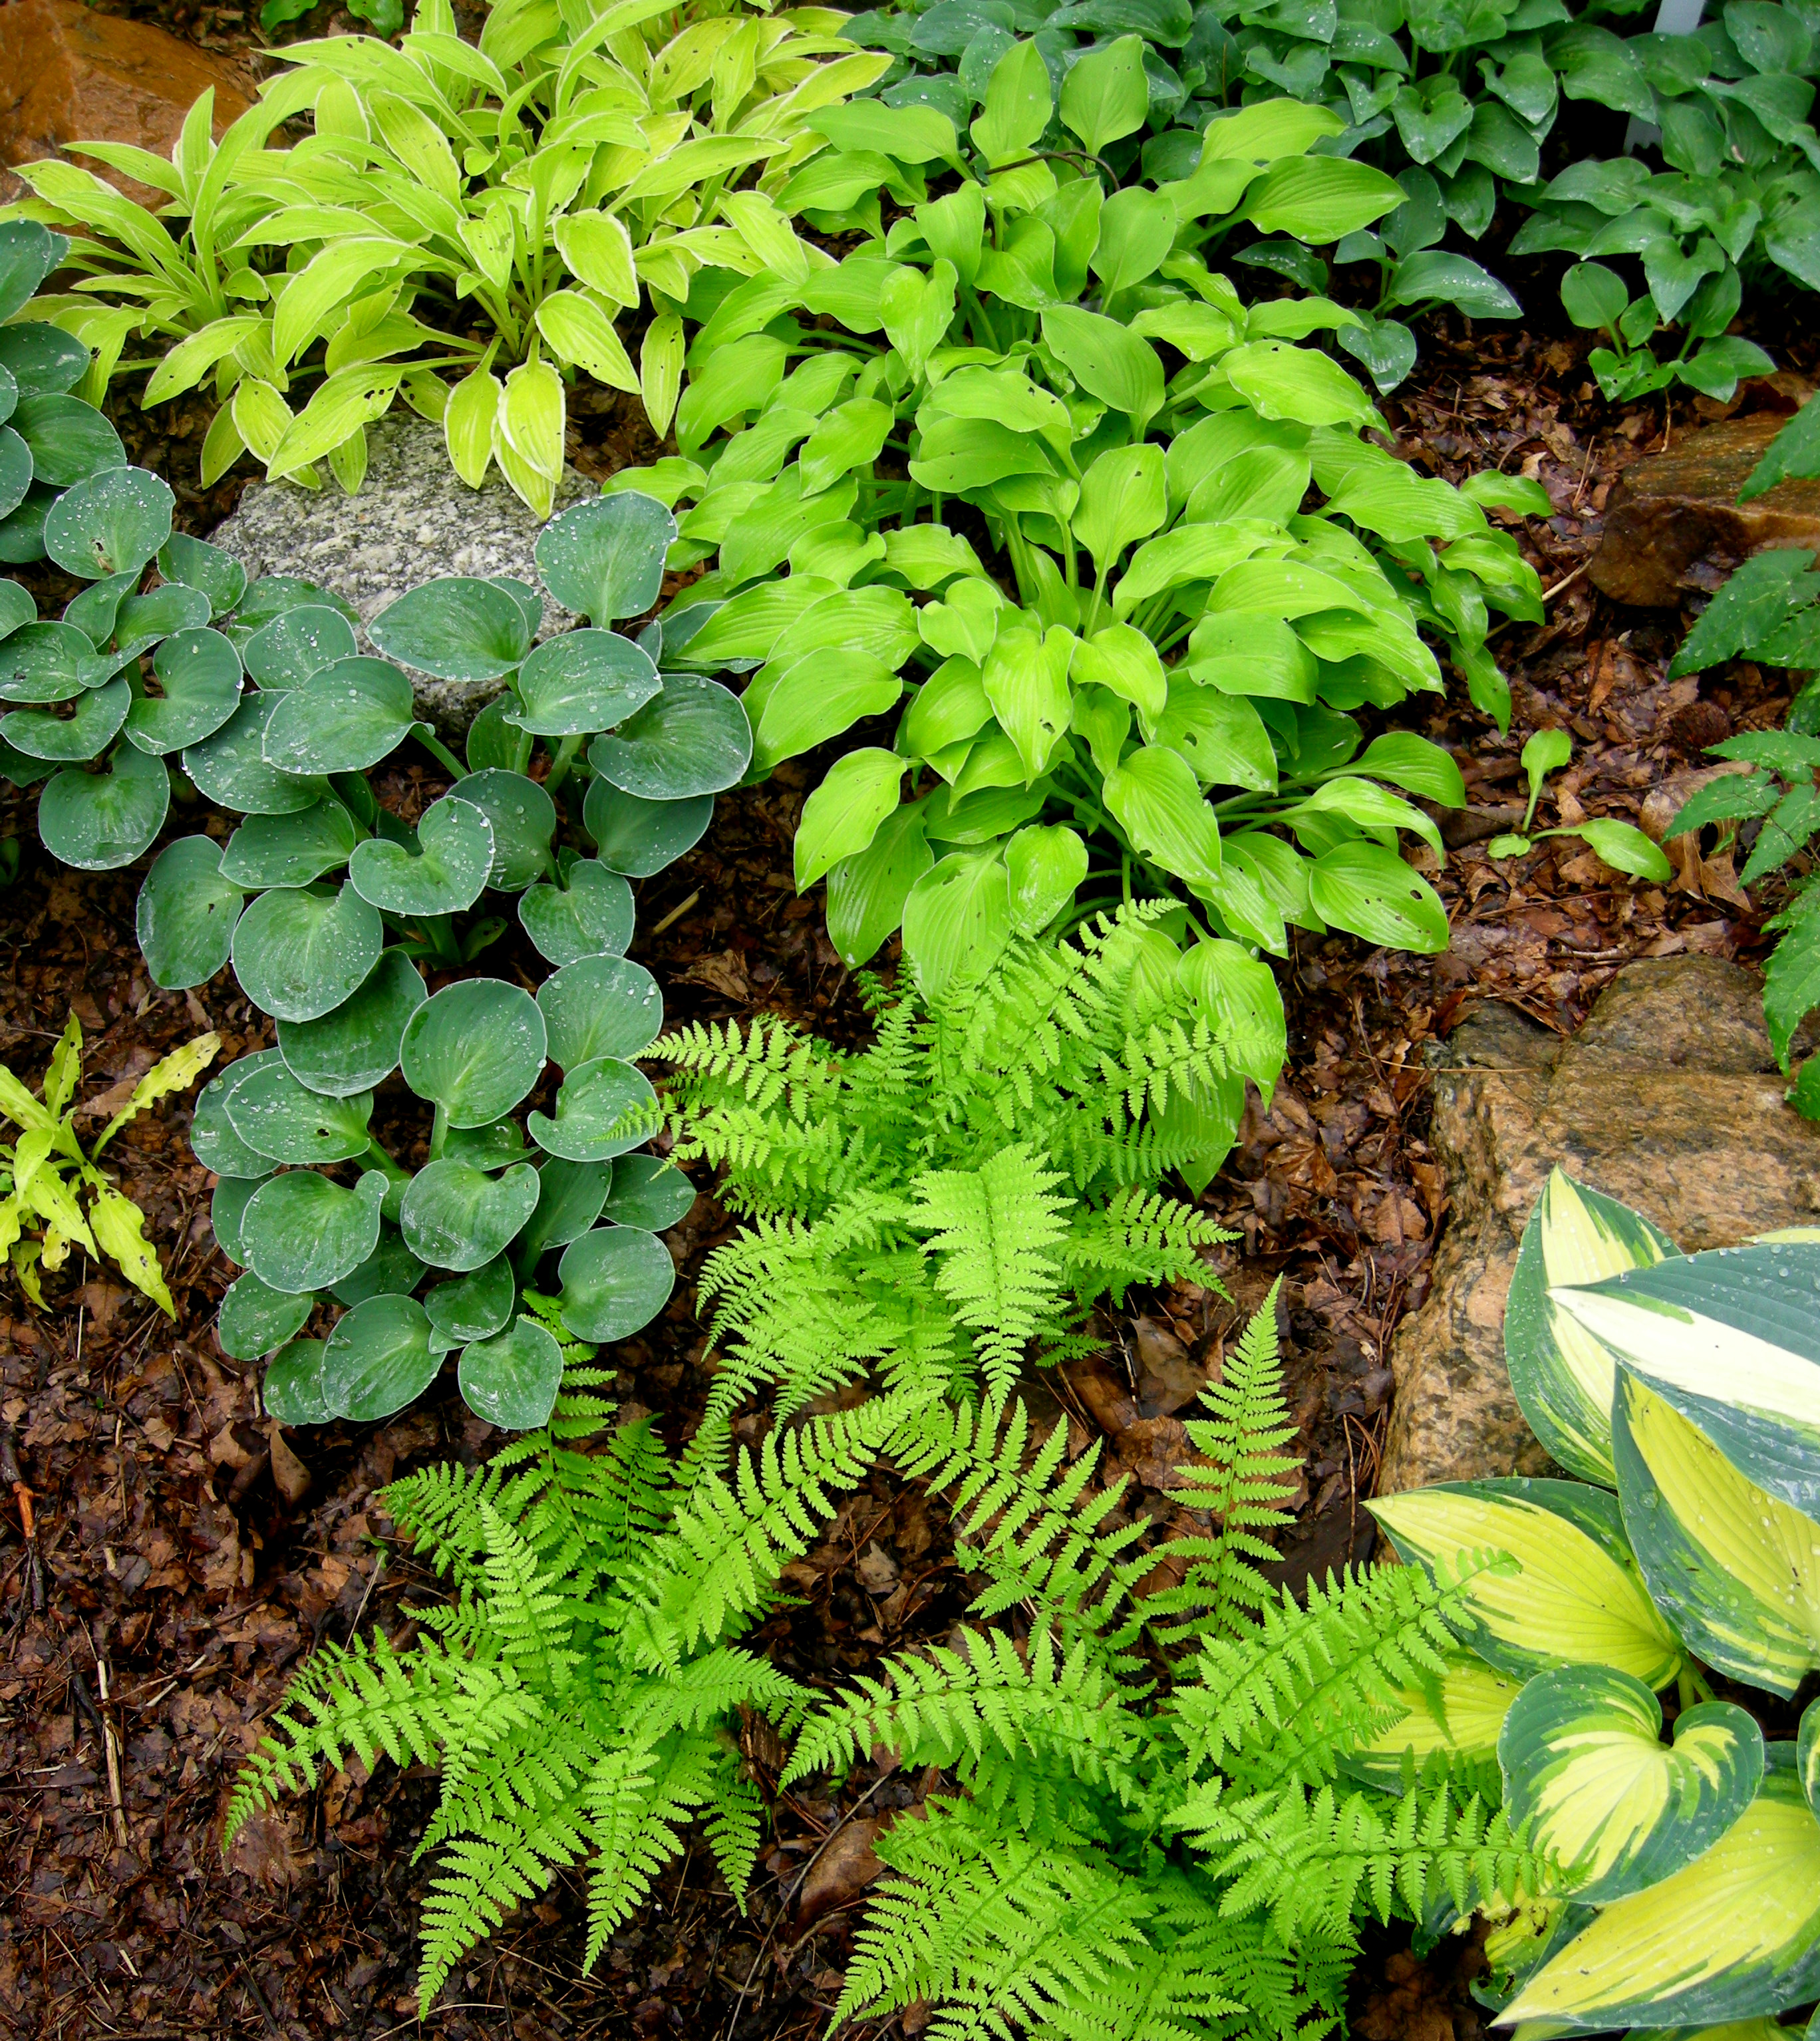 Hosta Containers And Companions CAROLYN'S SHADE GARDENS